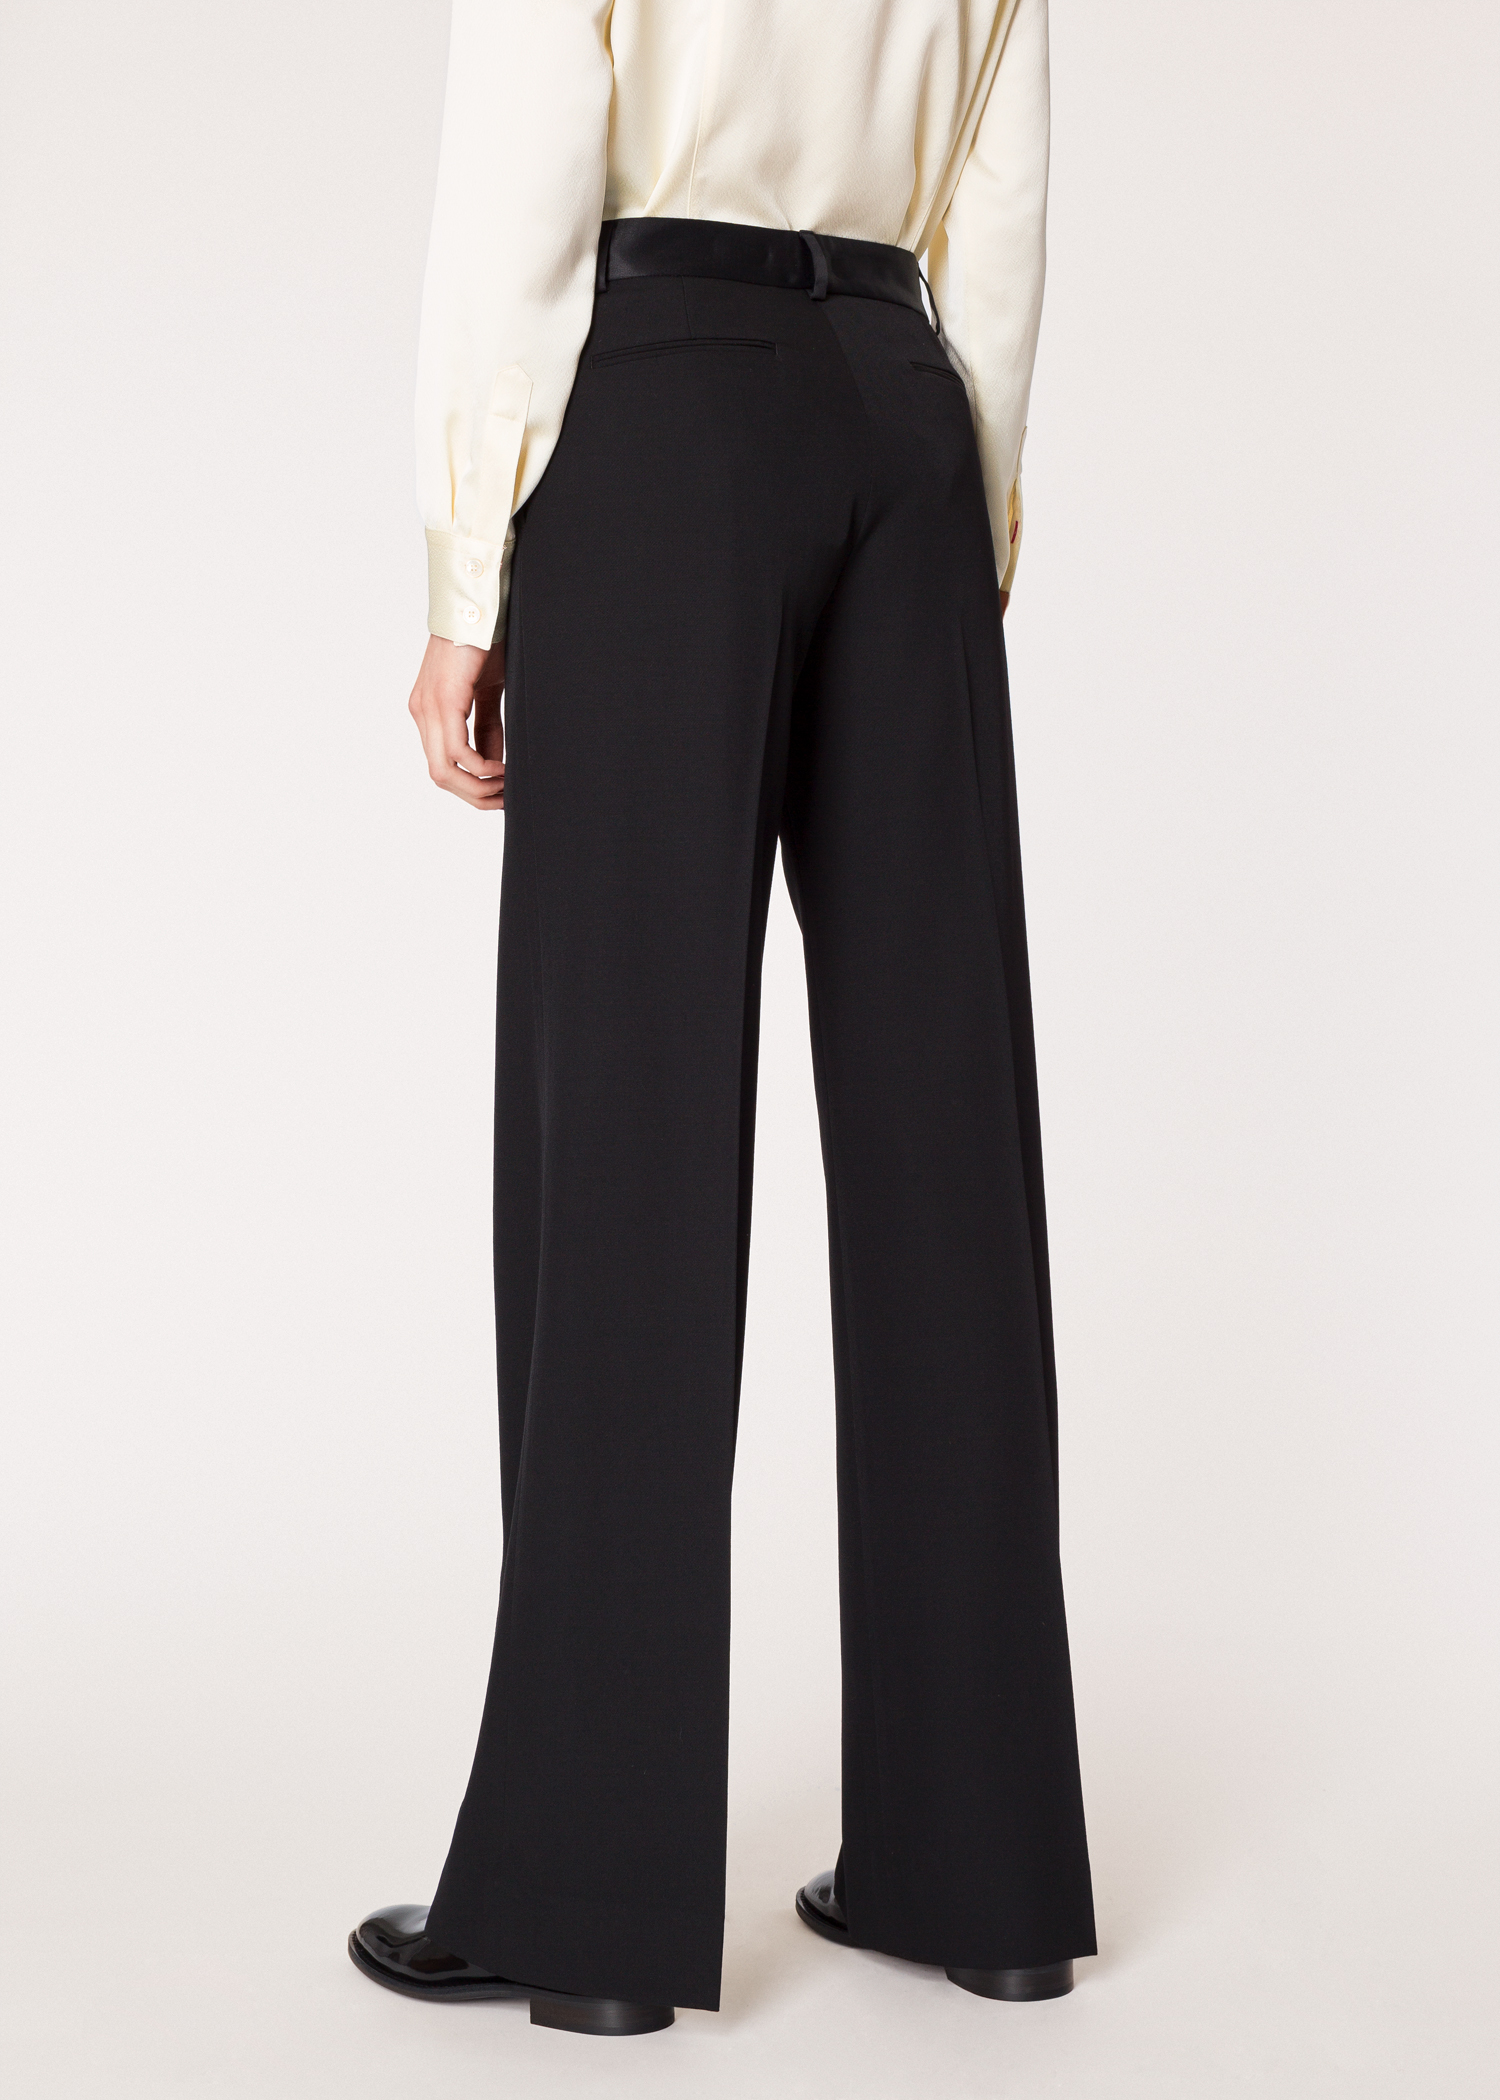 c05b77775ccd Model back close up - Women s Black Parallel Leg Tuxedo Wool Pants With  Satin Details Paul